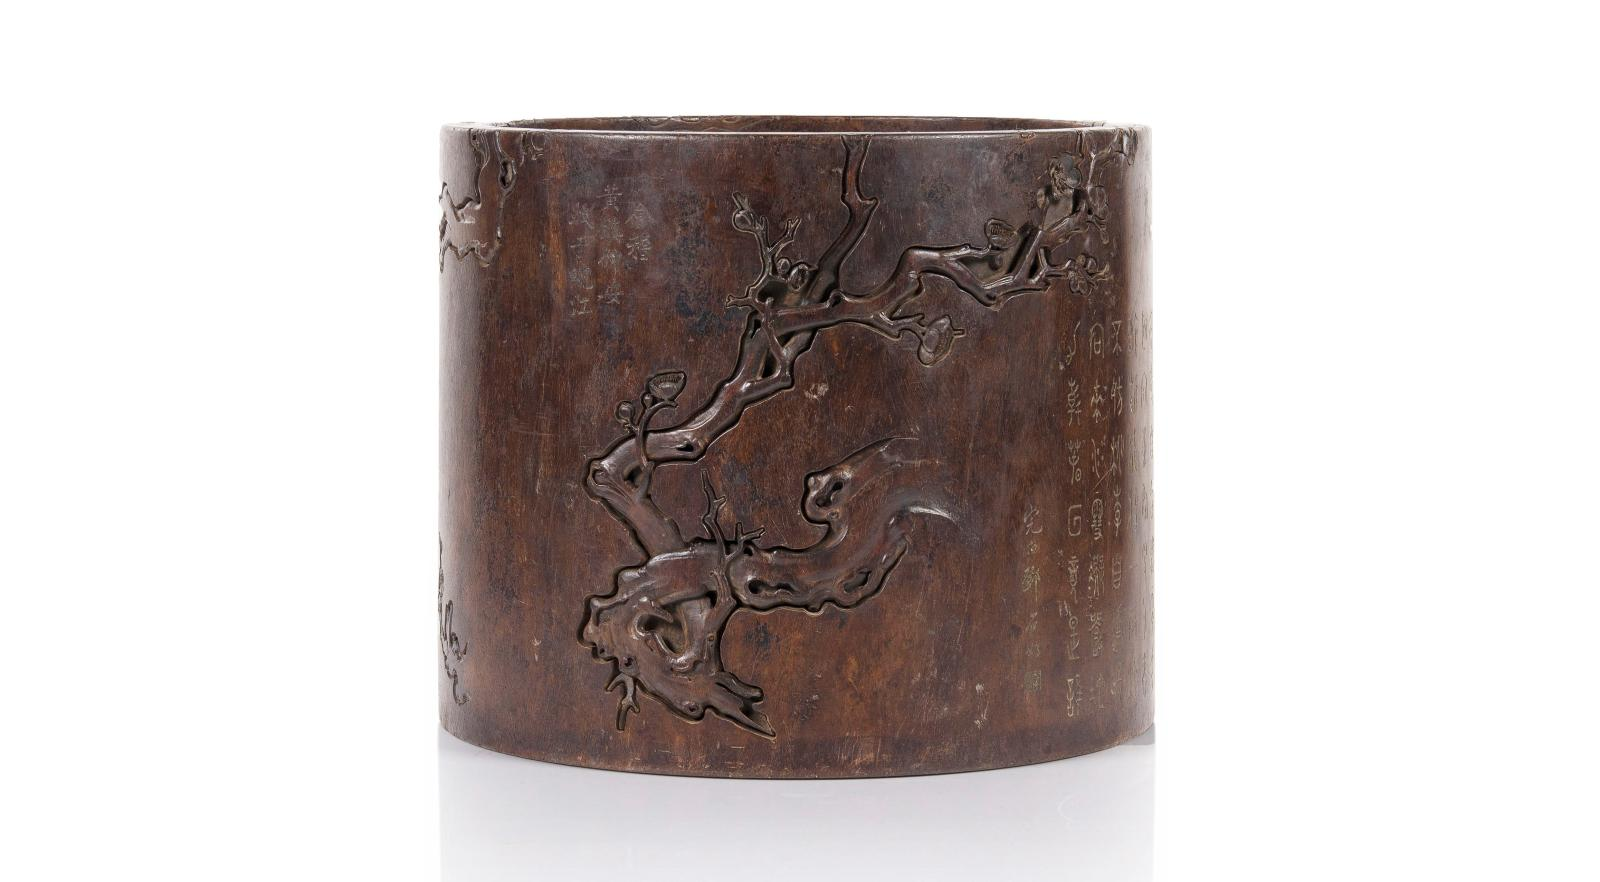 €429,000 China, 19th century, wooden brush-holder with carved low-relief decoration of flowering cherry branches and poems, h. 25.5, diam. 30.5 cm.Par